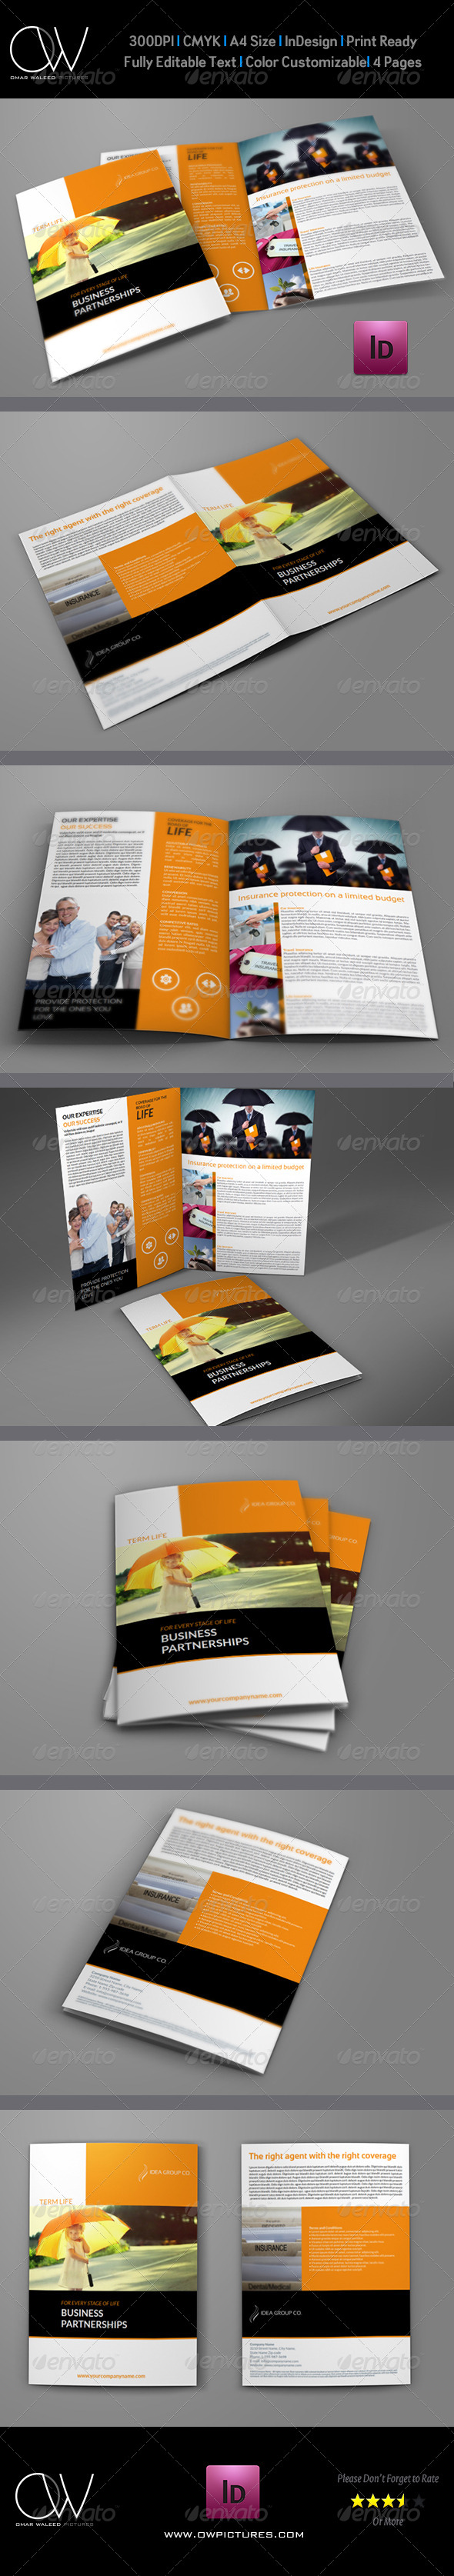 Company Brochure Insurance Bi-Fold Design Template - Corporate Brochures